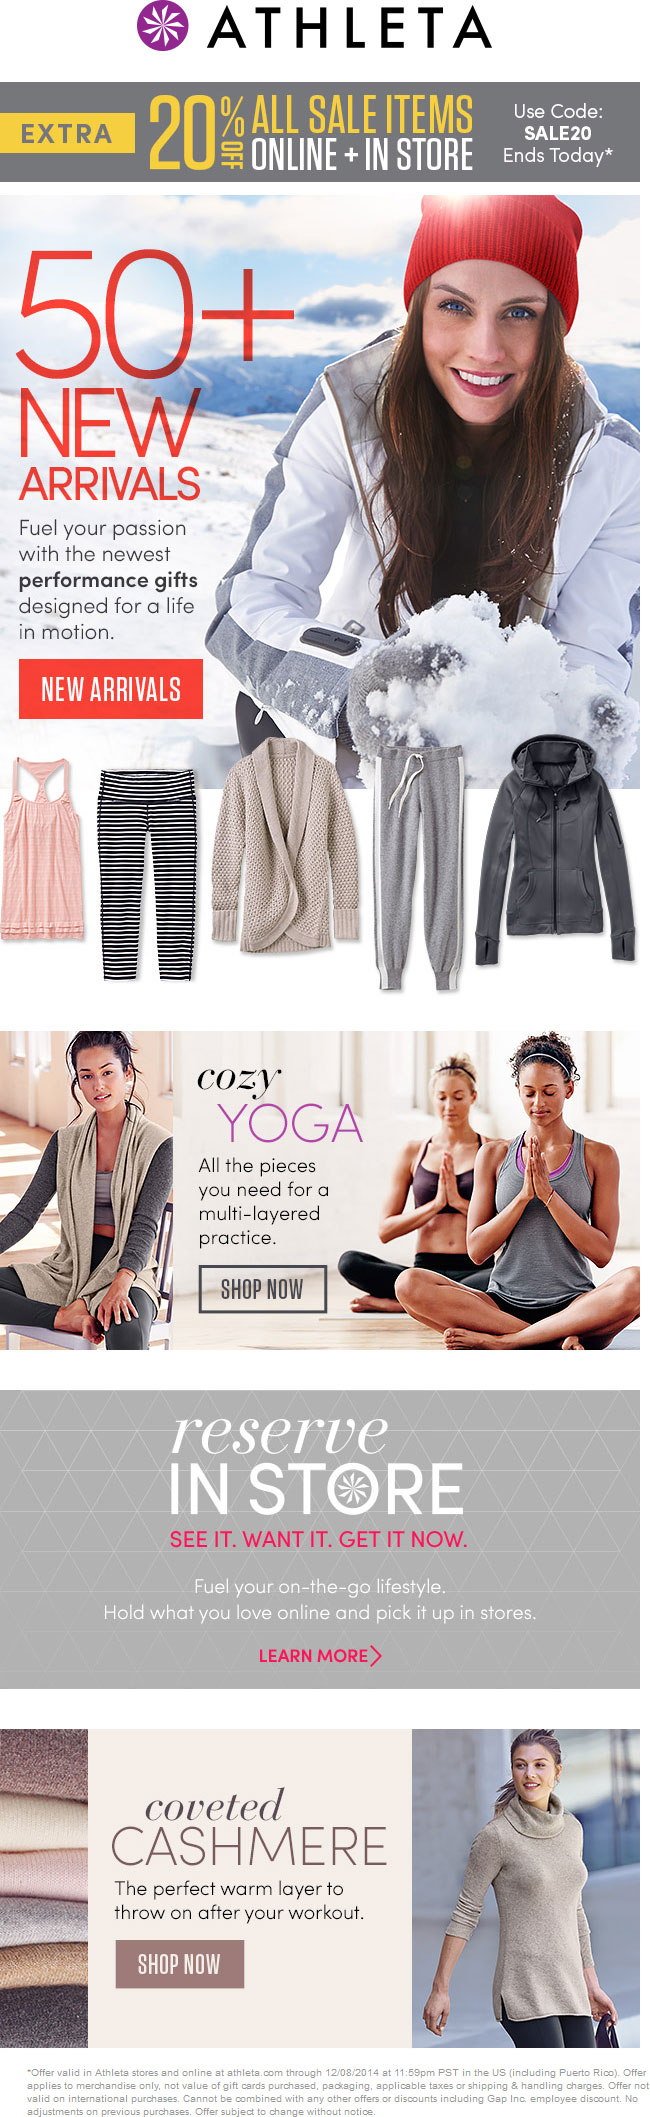 Athleta Coupon March 2018 Extra 20% off sale items today at Athleta, or online via promo code SALE20